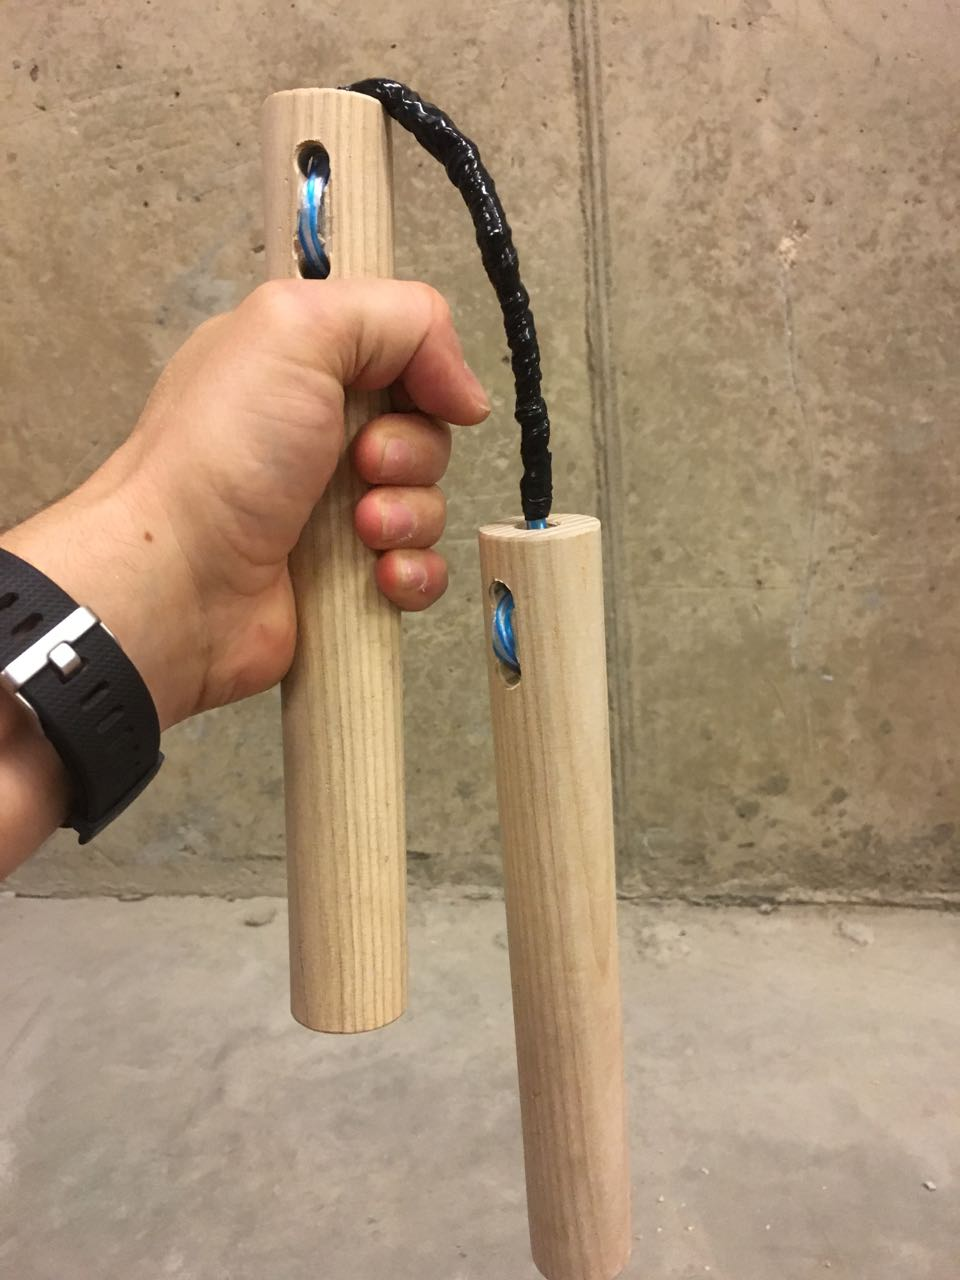 How To: Make Some Friggin Nunchucks!